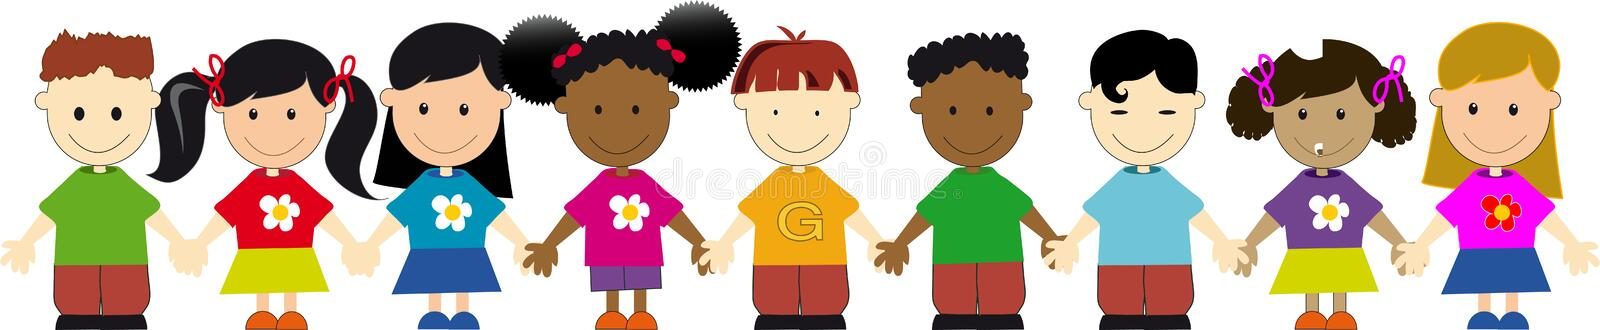 United Kids vector illustration